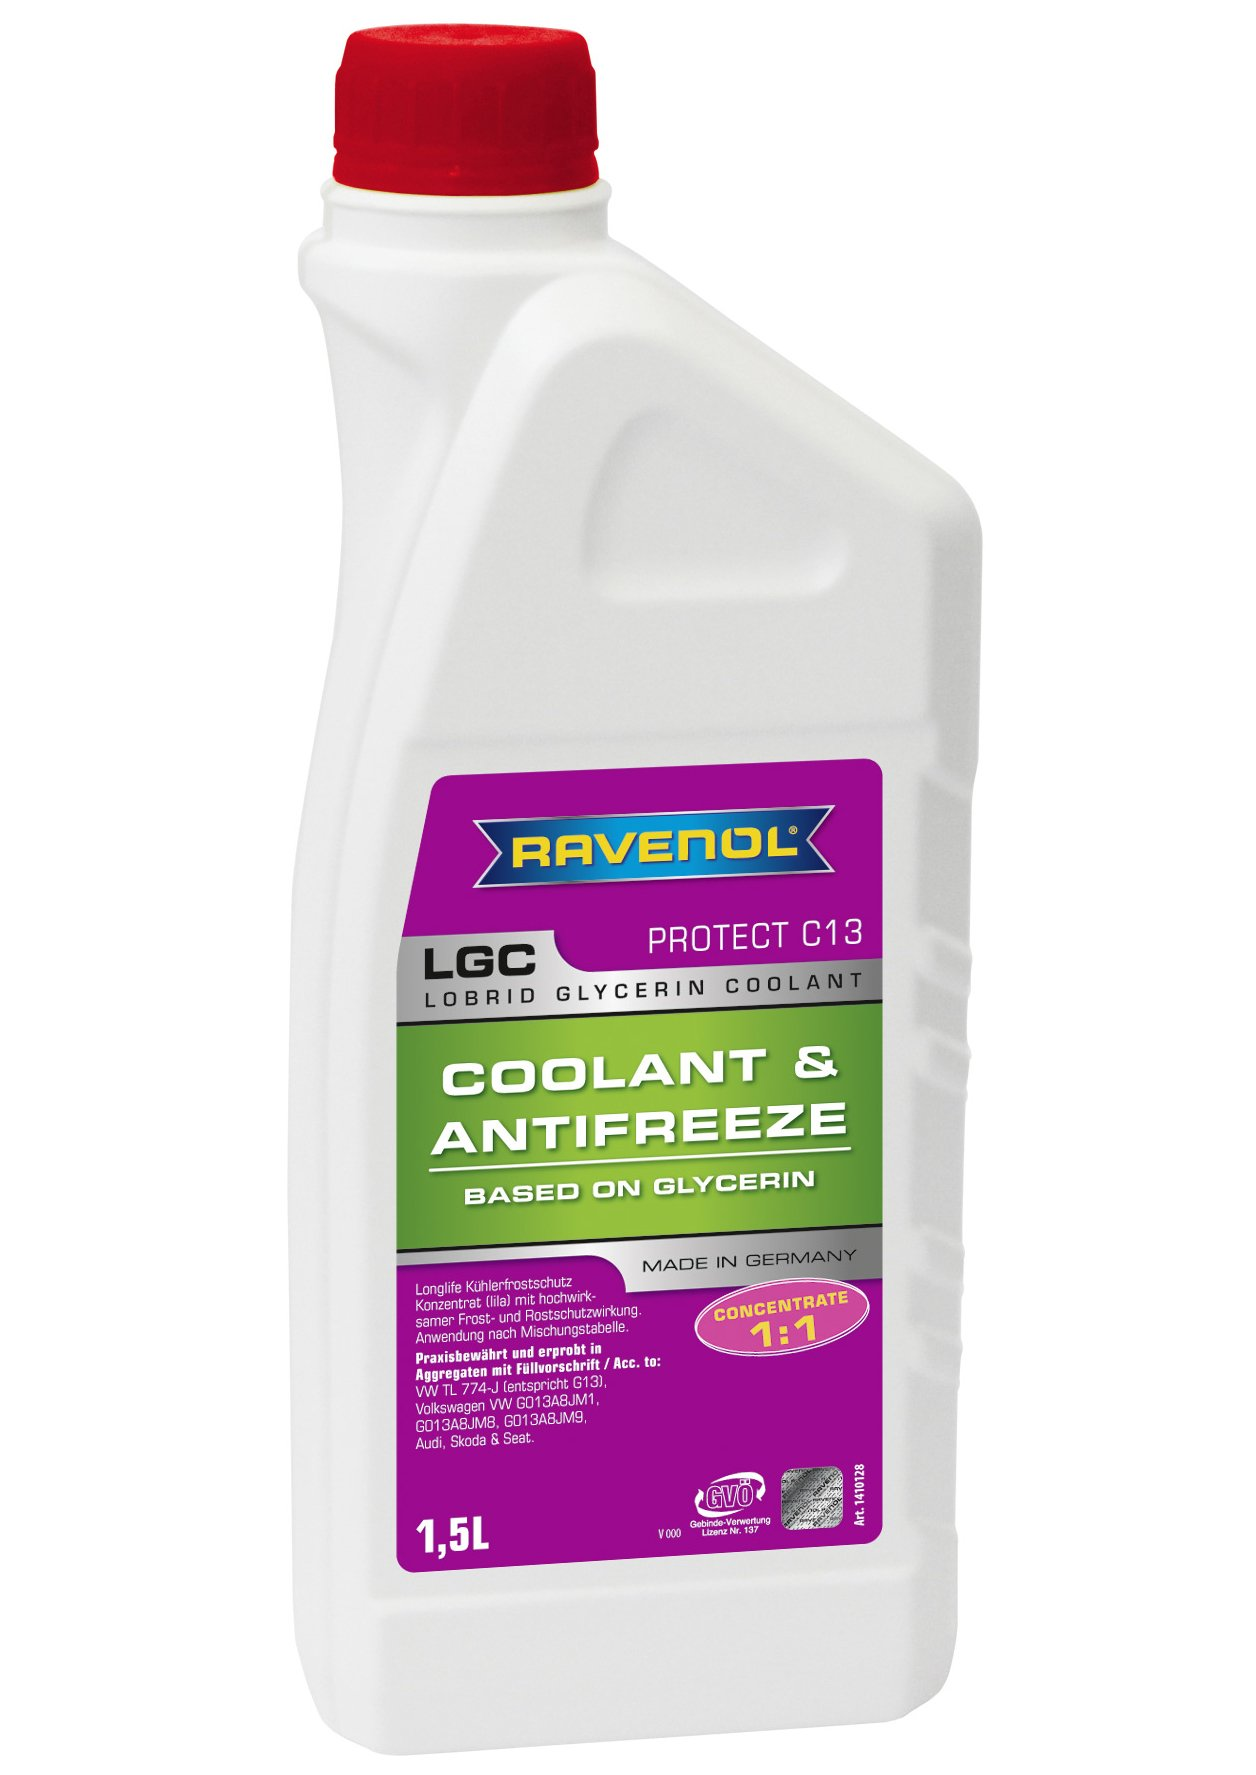 RAVENOL J4D2002 LGC C13 Coolant Antifreeze Concentrate (G13) (1.5 Liter)